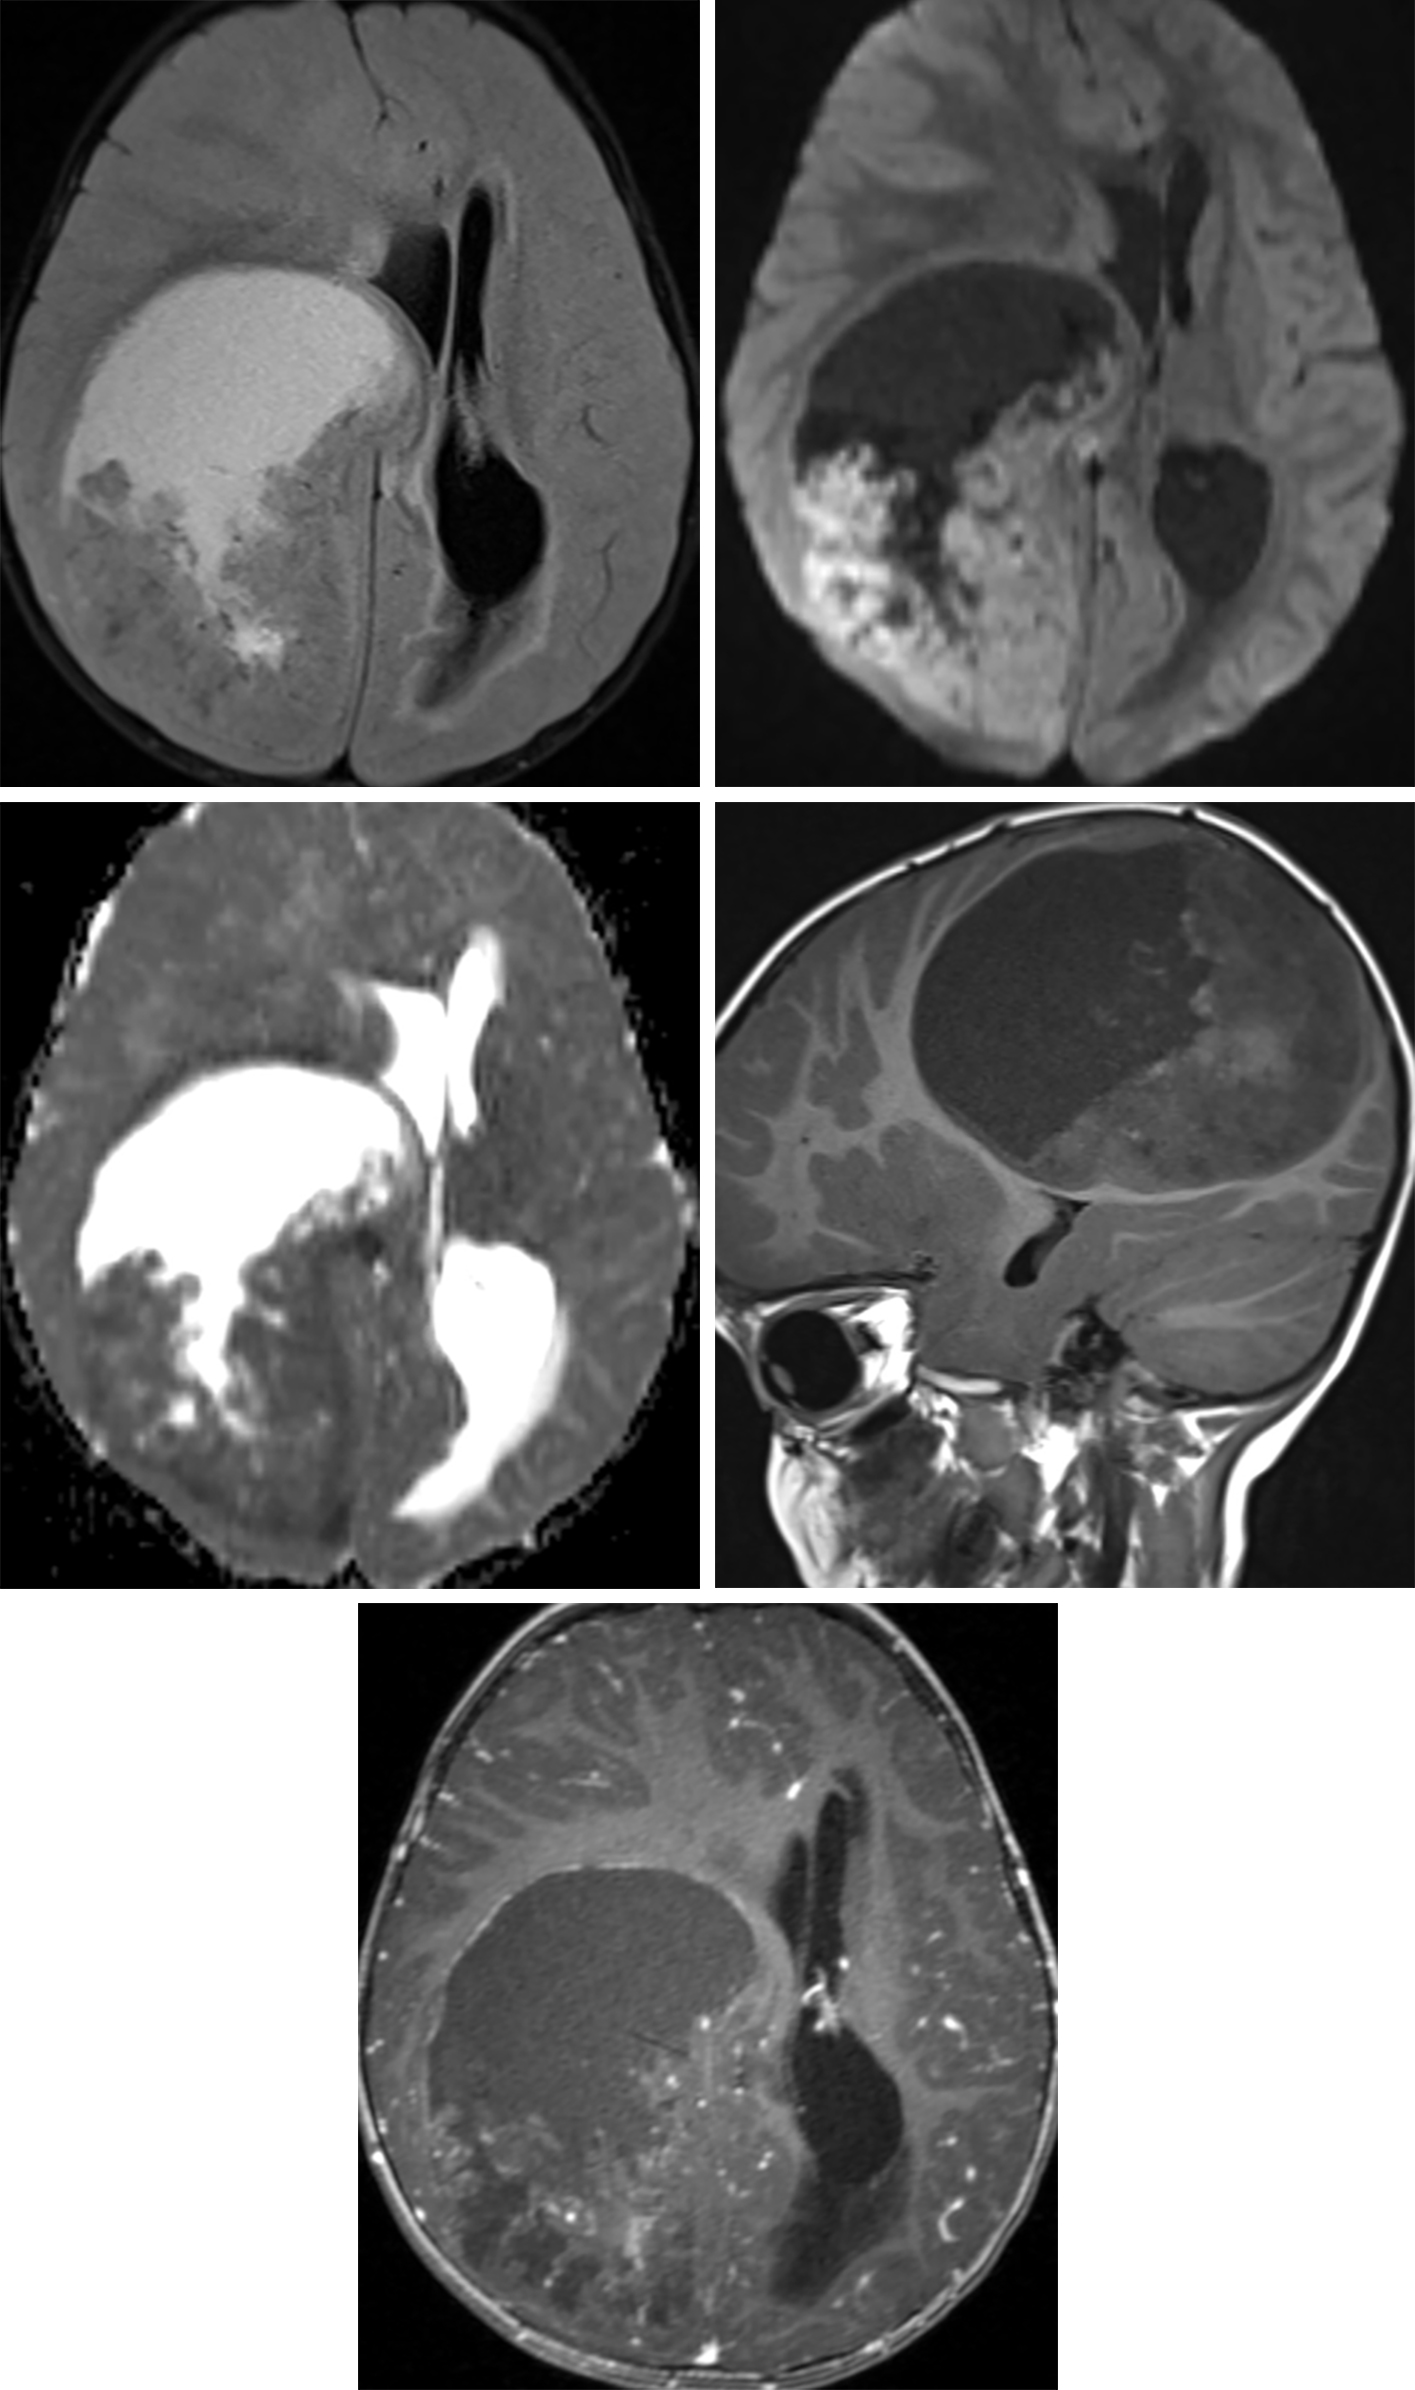 Figure 2: This supratentorial ependymoma is in a typical extraventricular location. The complex cystic and solid appearance is also more classic for these lesions, very different in appearance from infratentorial ependymomas. (Top Left) The bright signal of the cystic component that is different from CSF on FLAIR implies hemorrhagic or proteinaceous cystic contents. The restricted diffusion in the solid component (top right, DWI bright; middle left, ADC dark) is also more typical for the supratentorial versions of these tumors, implying hypercellularity. (Middle Right) The heterogeneous bright areas in this noncontrast T1-weighted sagittal image may represent hemorrhagic or calcific components. (Bottom) This ependymoma has very little enhancement, but moderate heterogeneous enhancement of the solid portions is more common for these tumors.